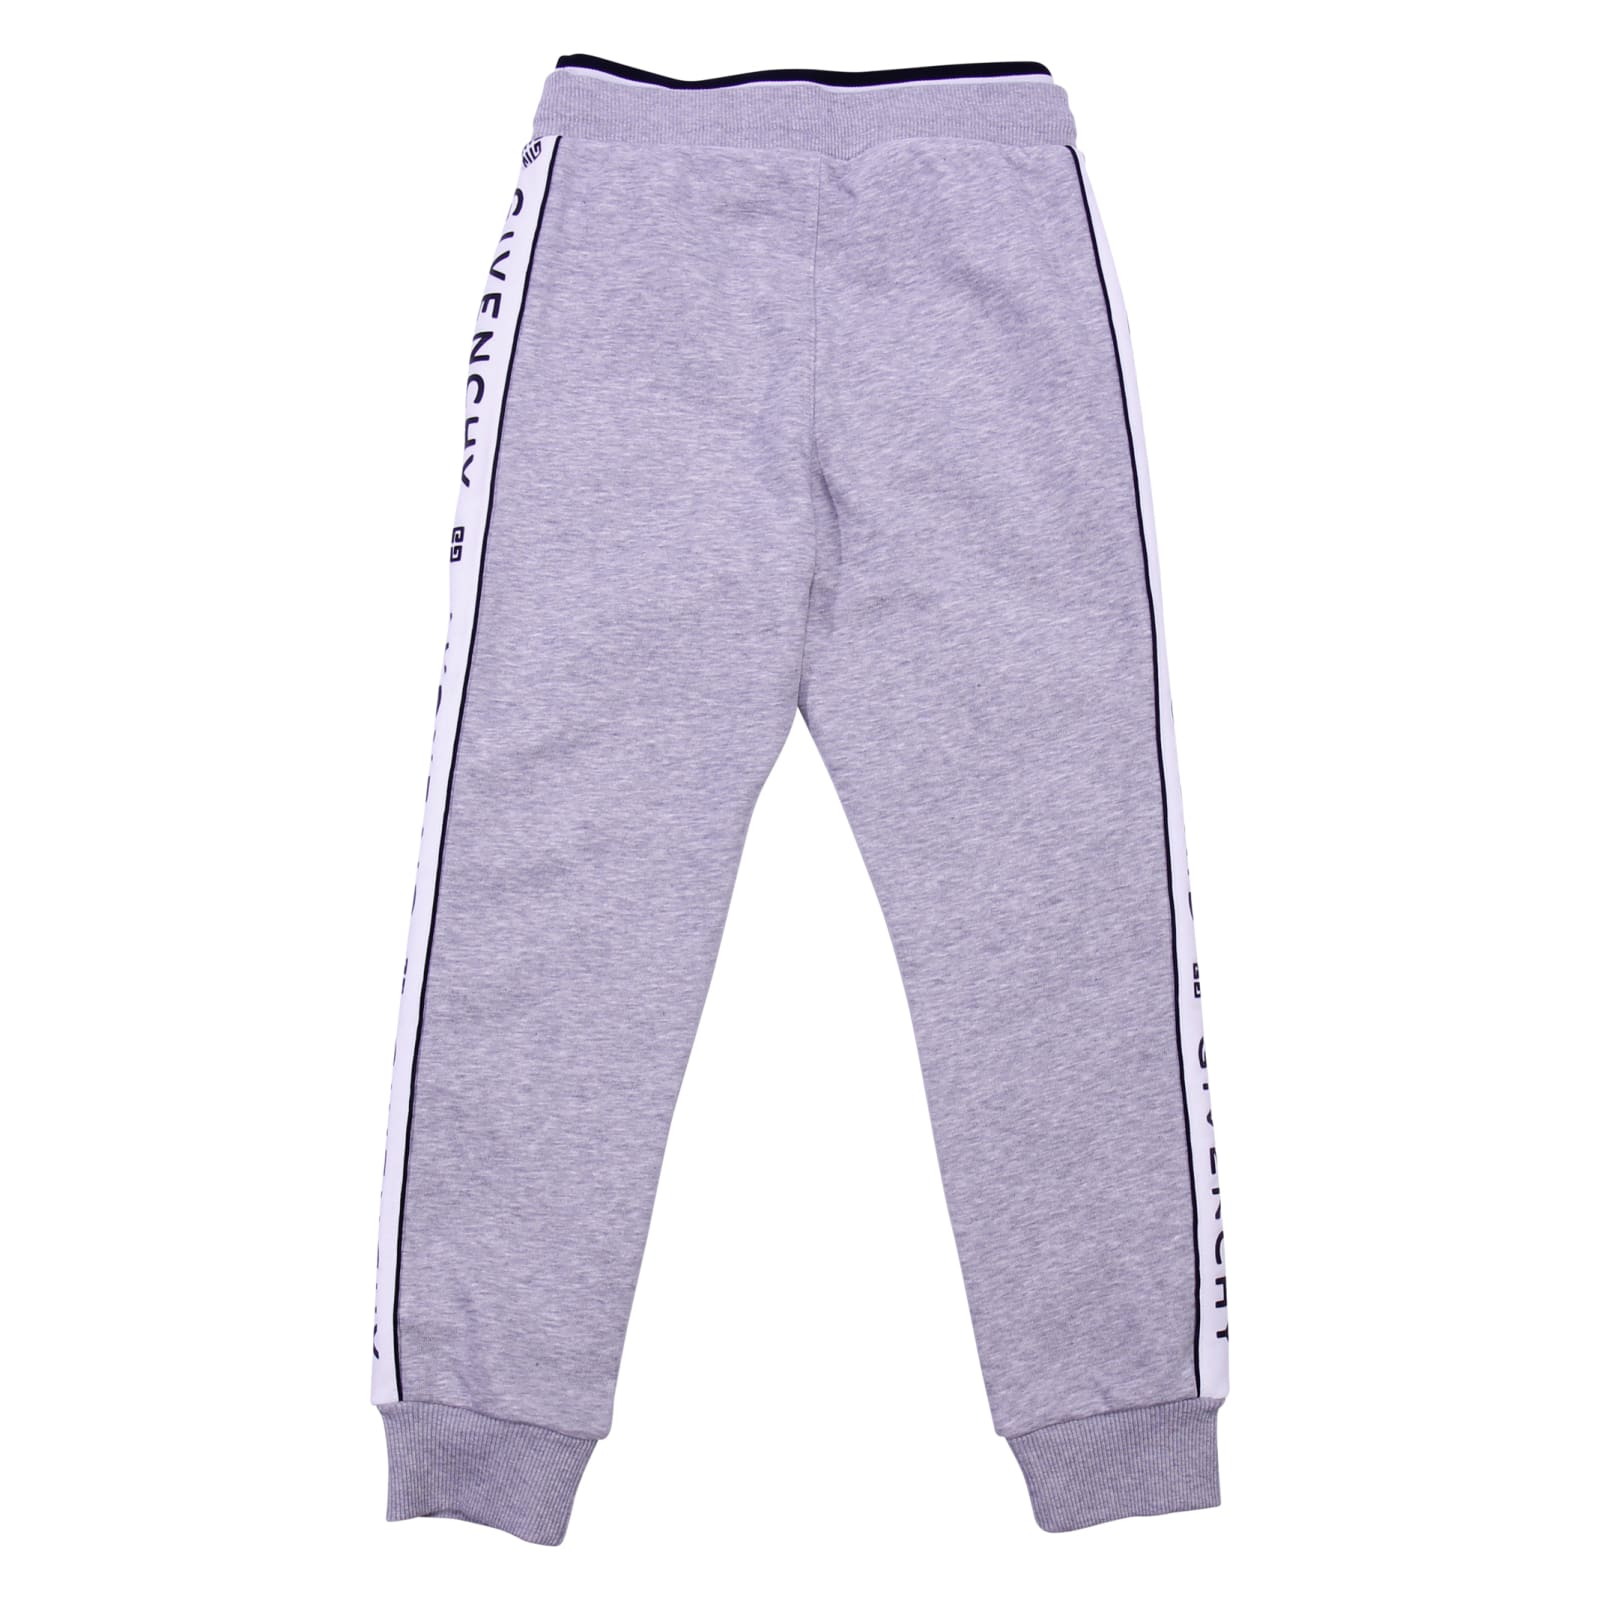 la moitié 0fef5 d1024 Best price on the market at italist | Givenchy Givenchy Grey Cotton  Sweatpants